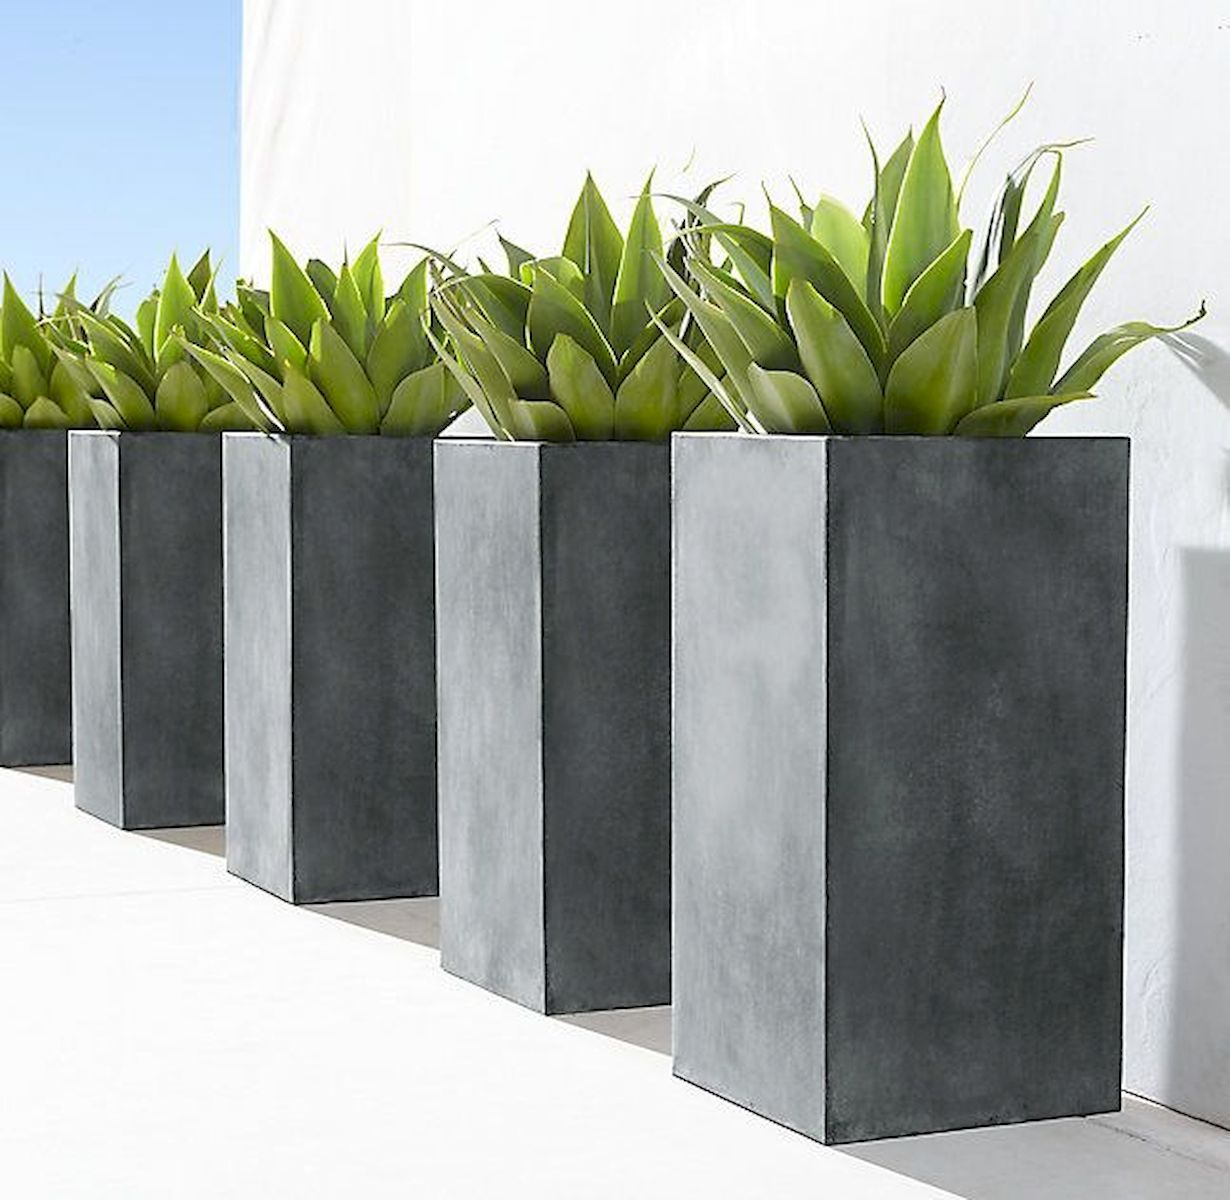 Fleurs En Pot Resistant Au Gel unique modern precast planters to make your outdoors stylish